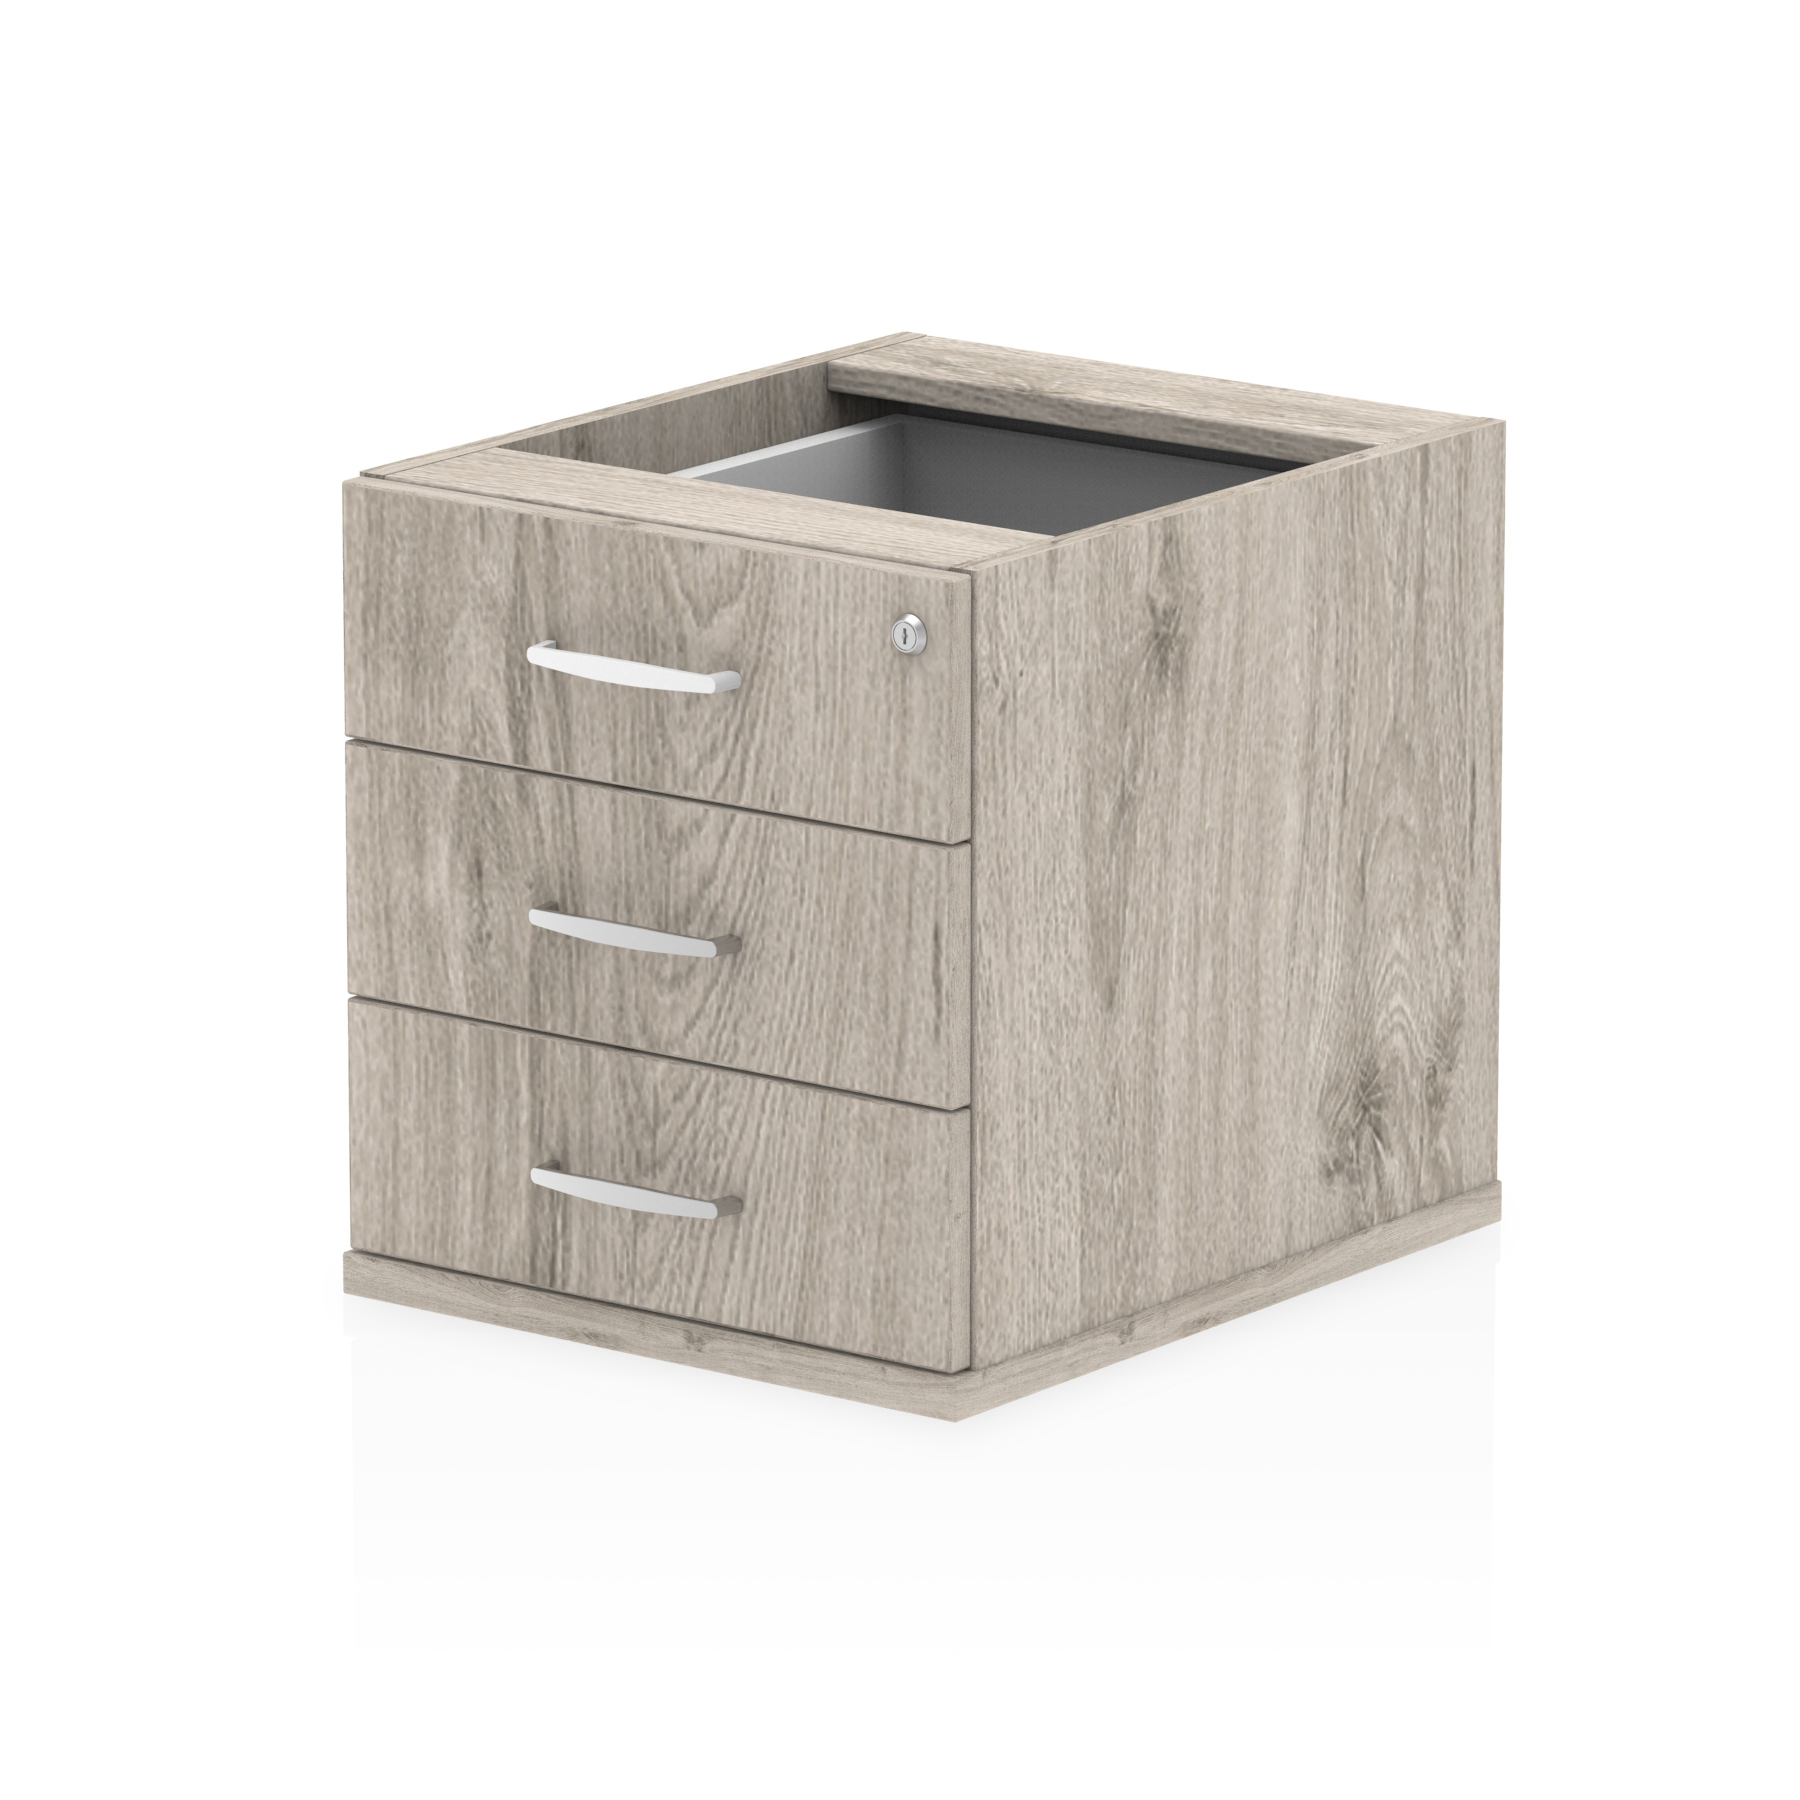 Pedestals Trexus 3 Drawer Fixed Pedestal 426x463x480mm Grey Oak Ref I003220